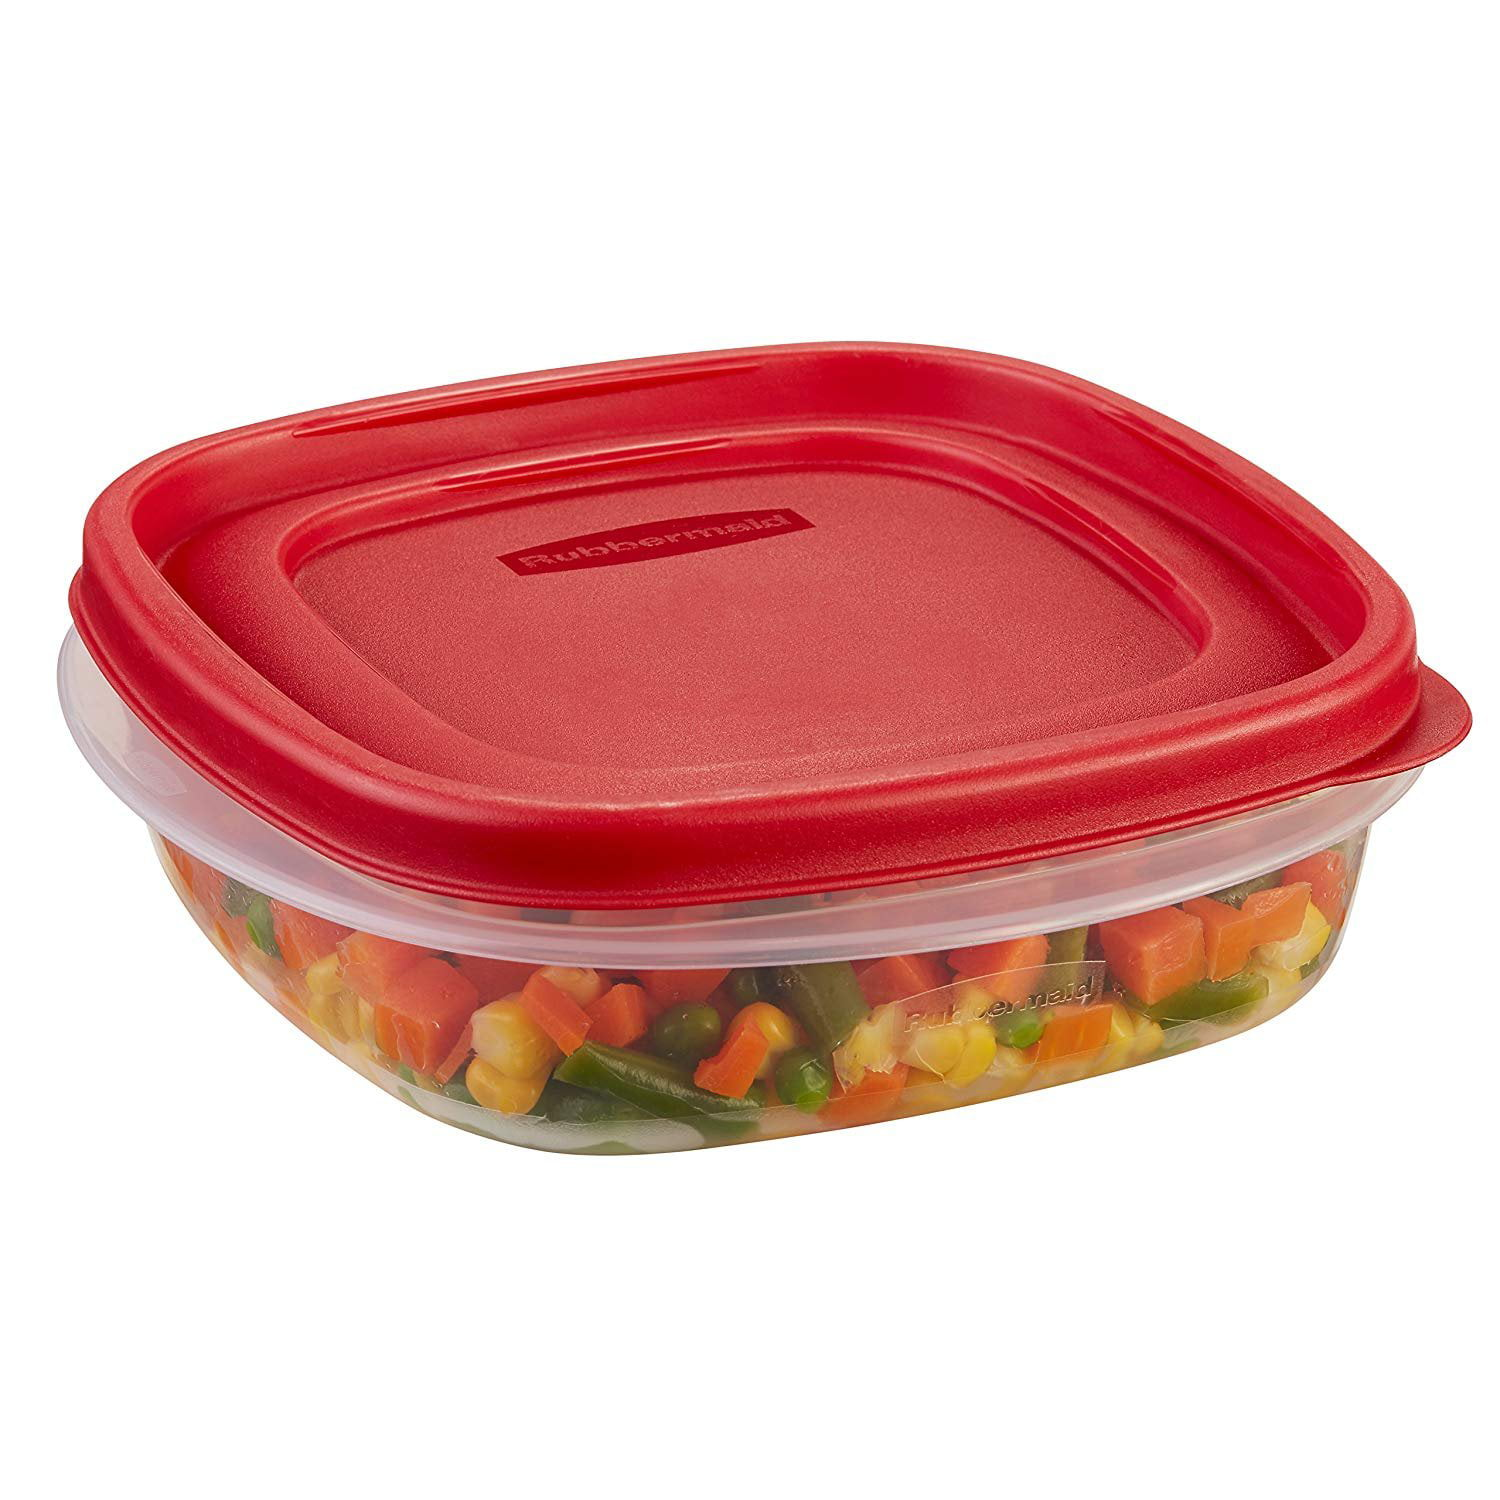 Rubbermaid Easy Find Lids Food Storage Container, 3 Cup